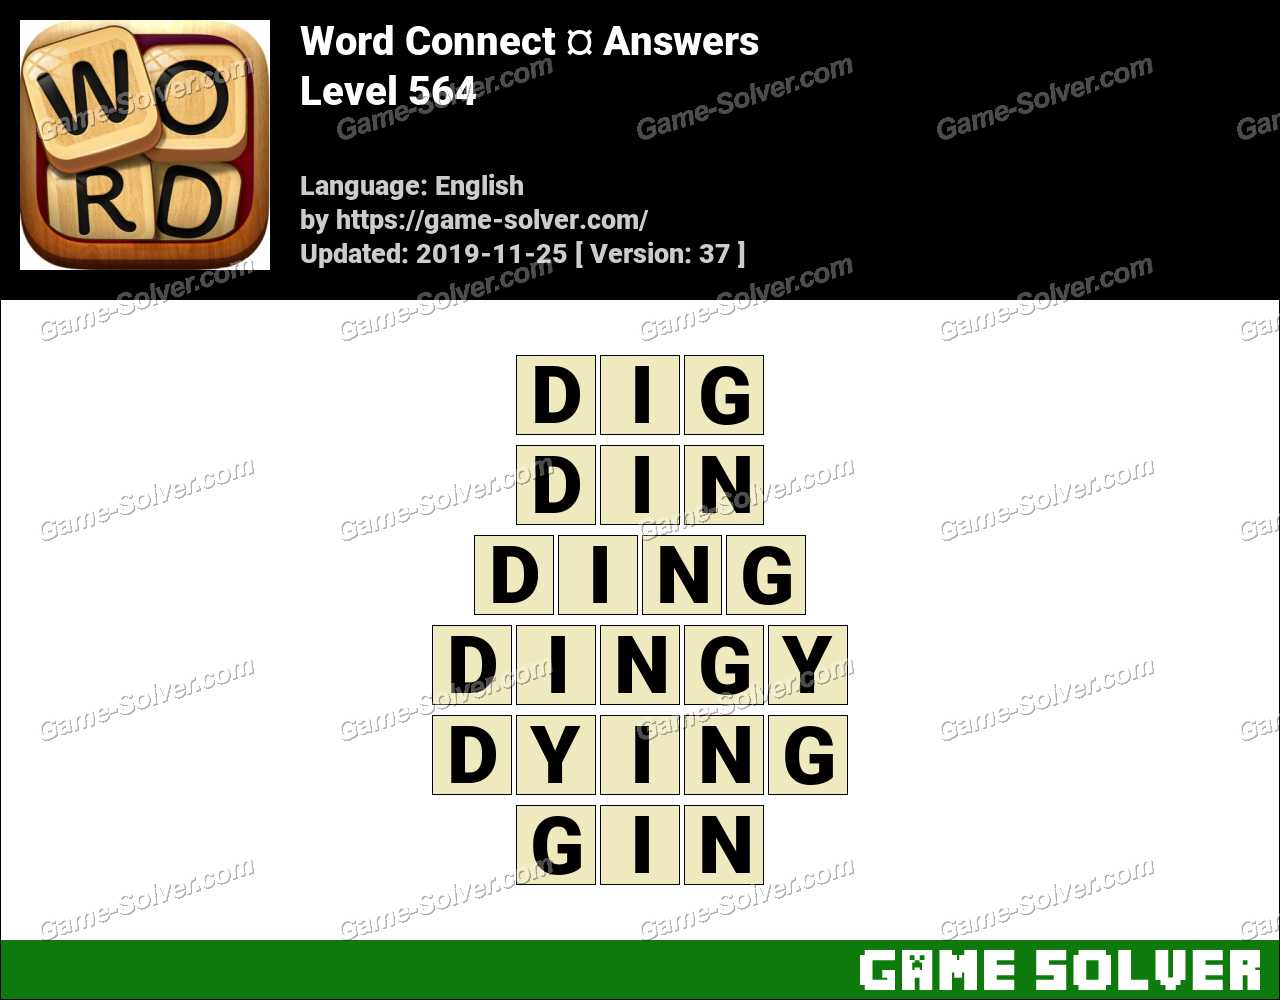 Word Connect Level 564 Answers